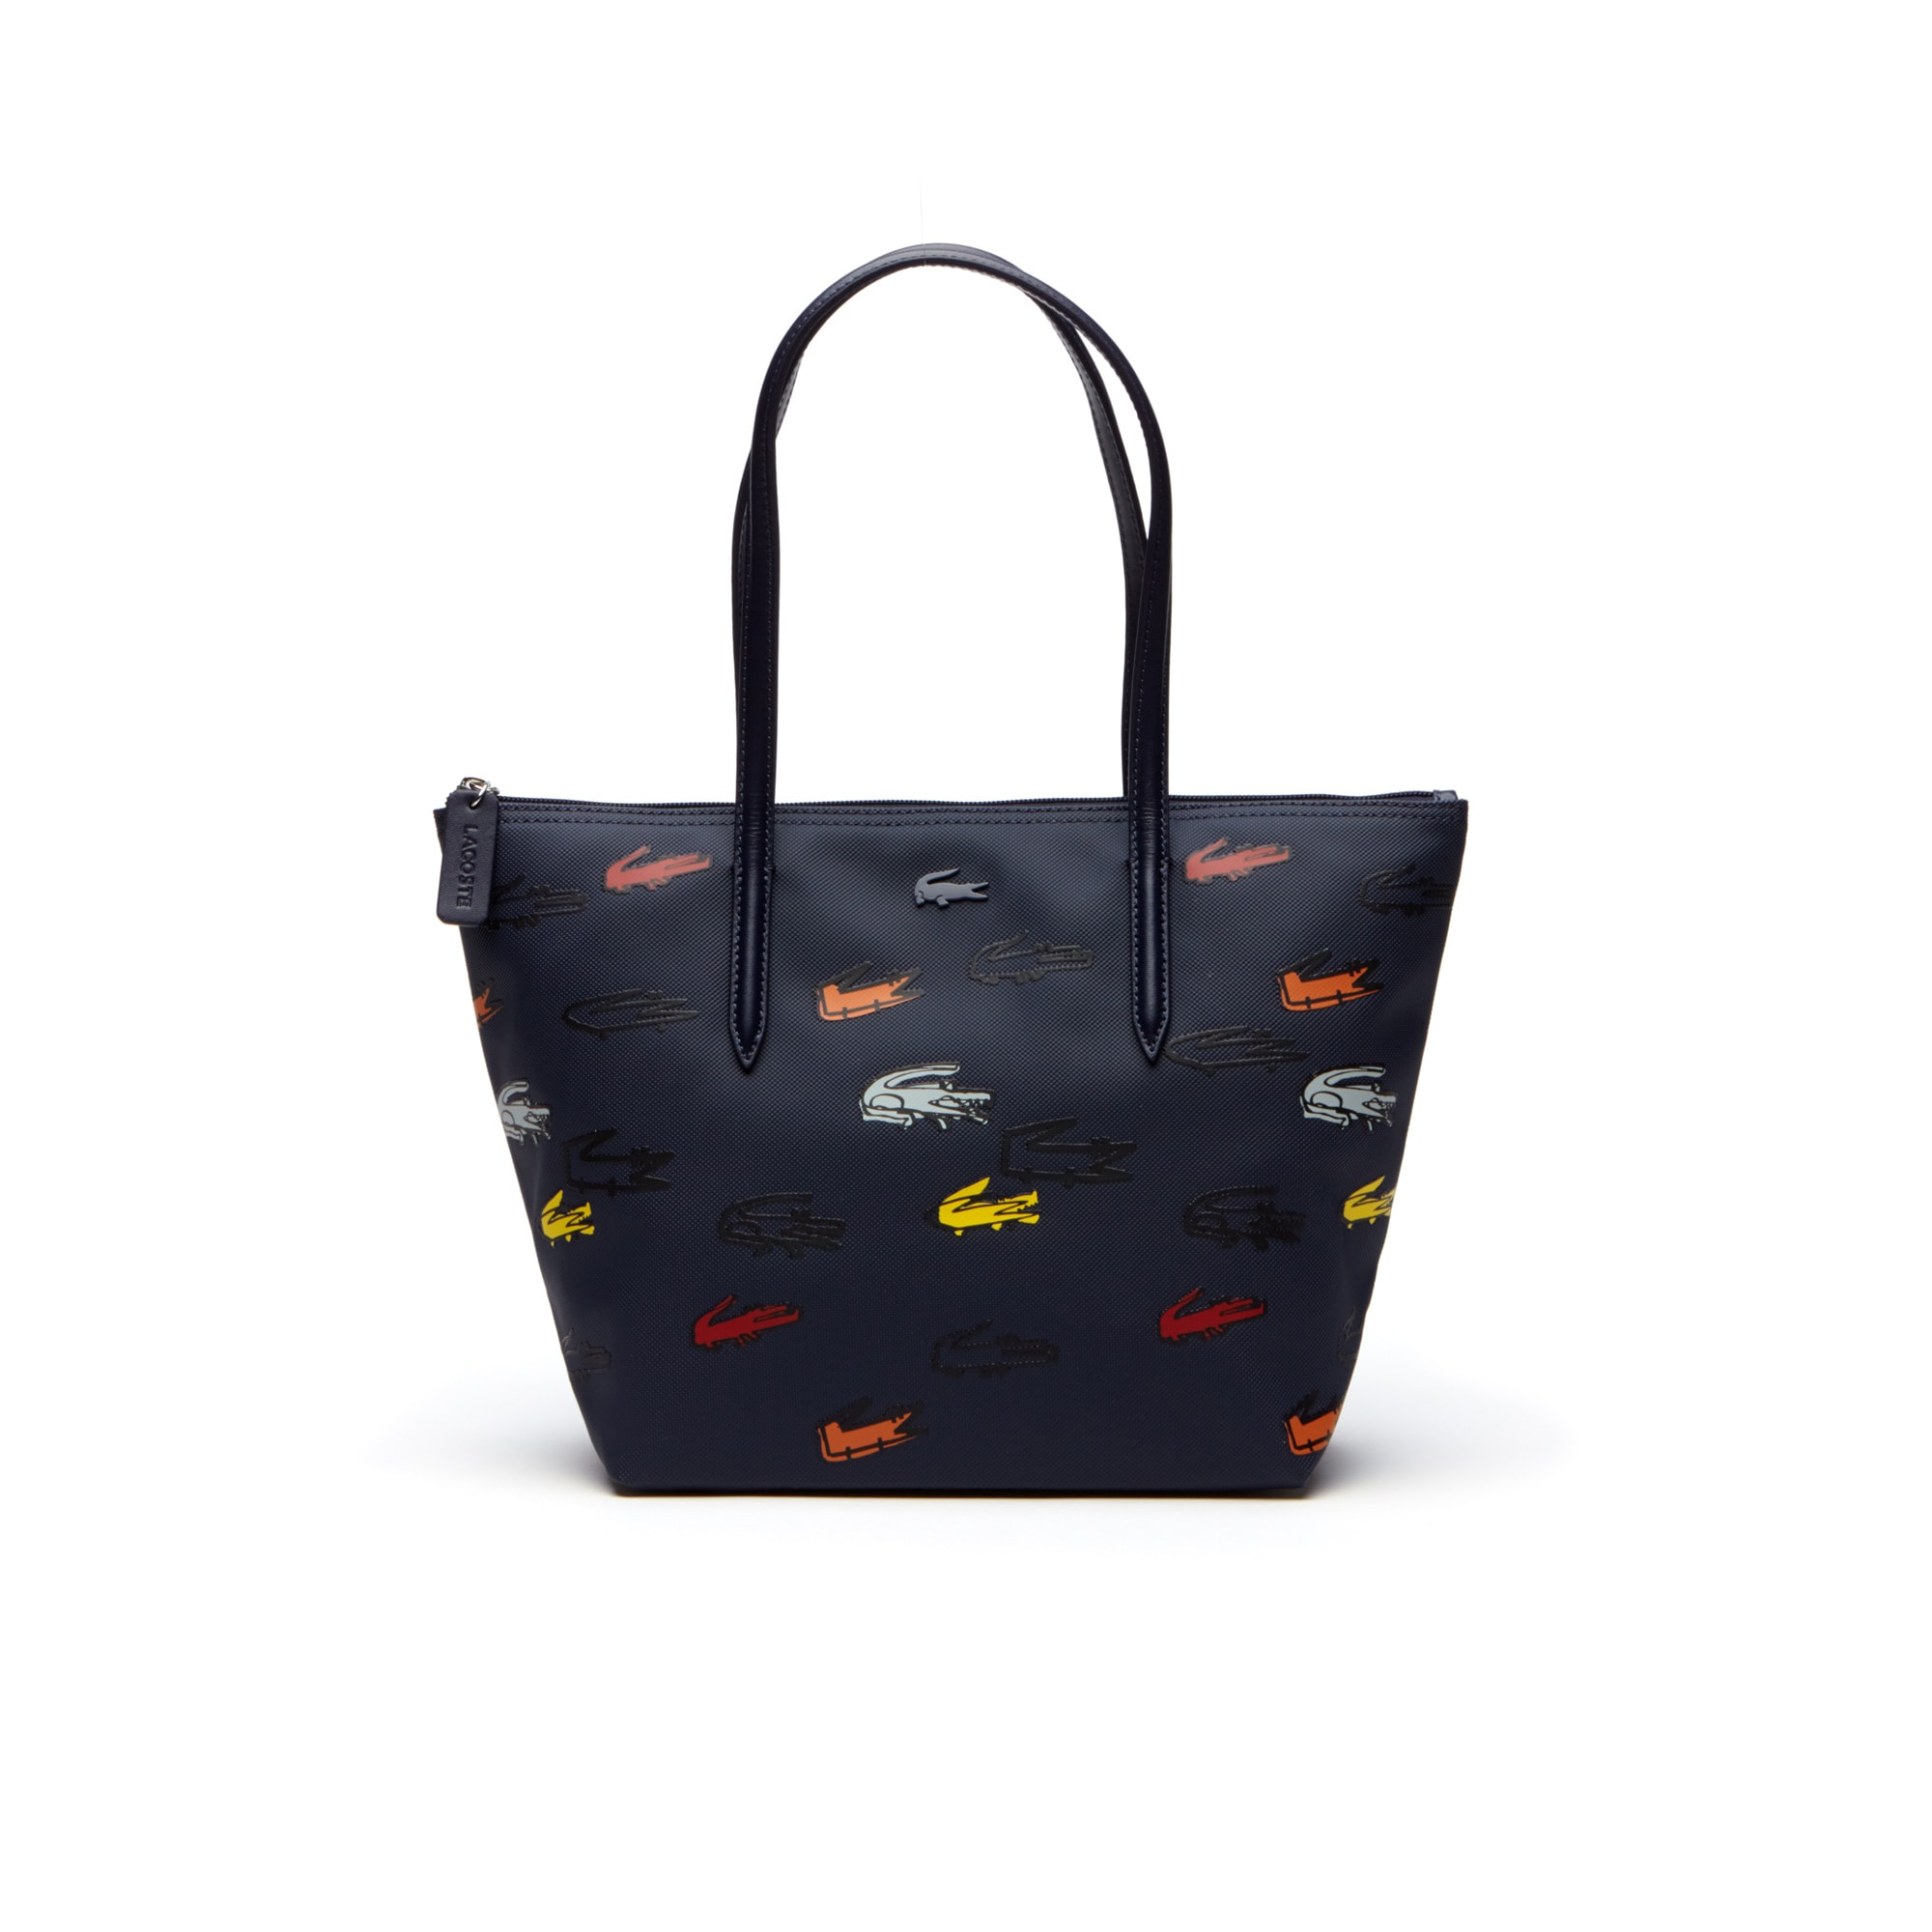 Women's L.12.12 Concept Croc Print Small Zip Tote Bag